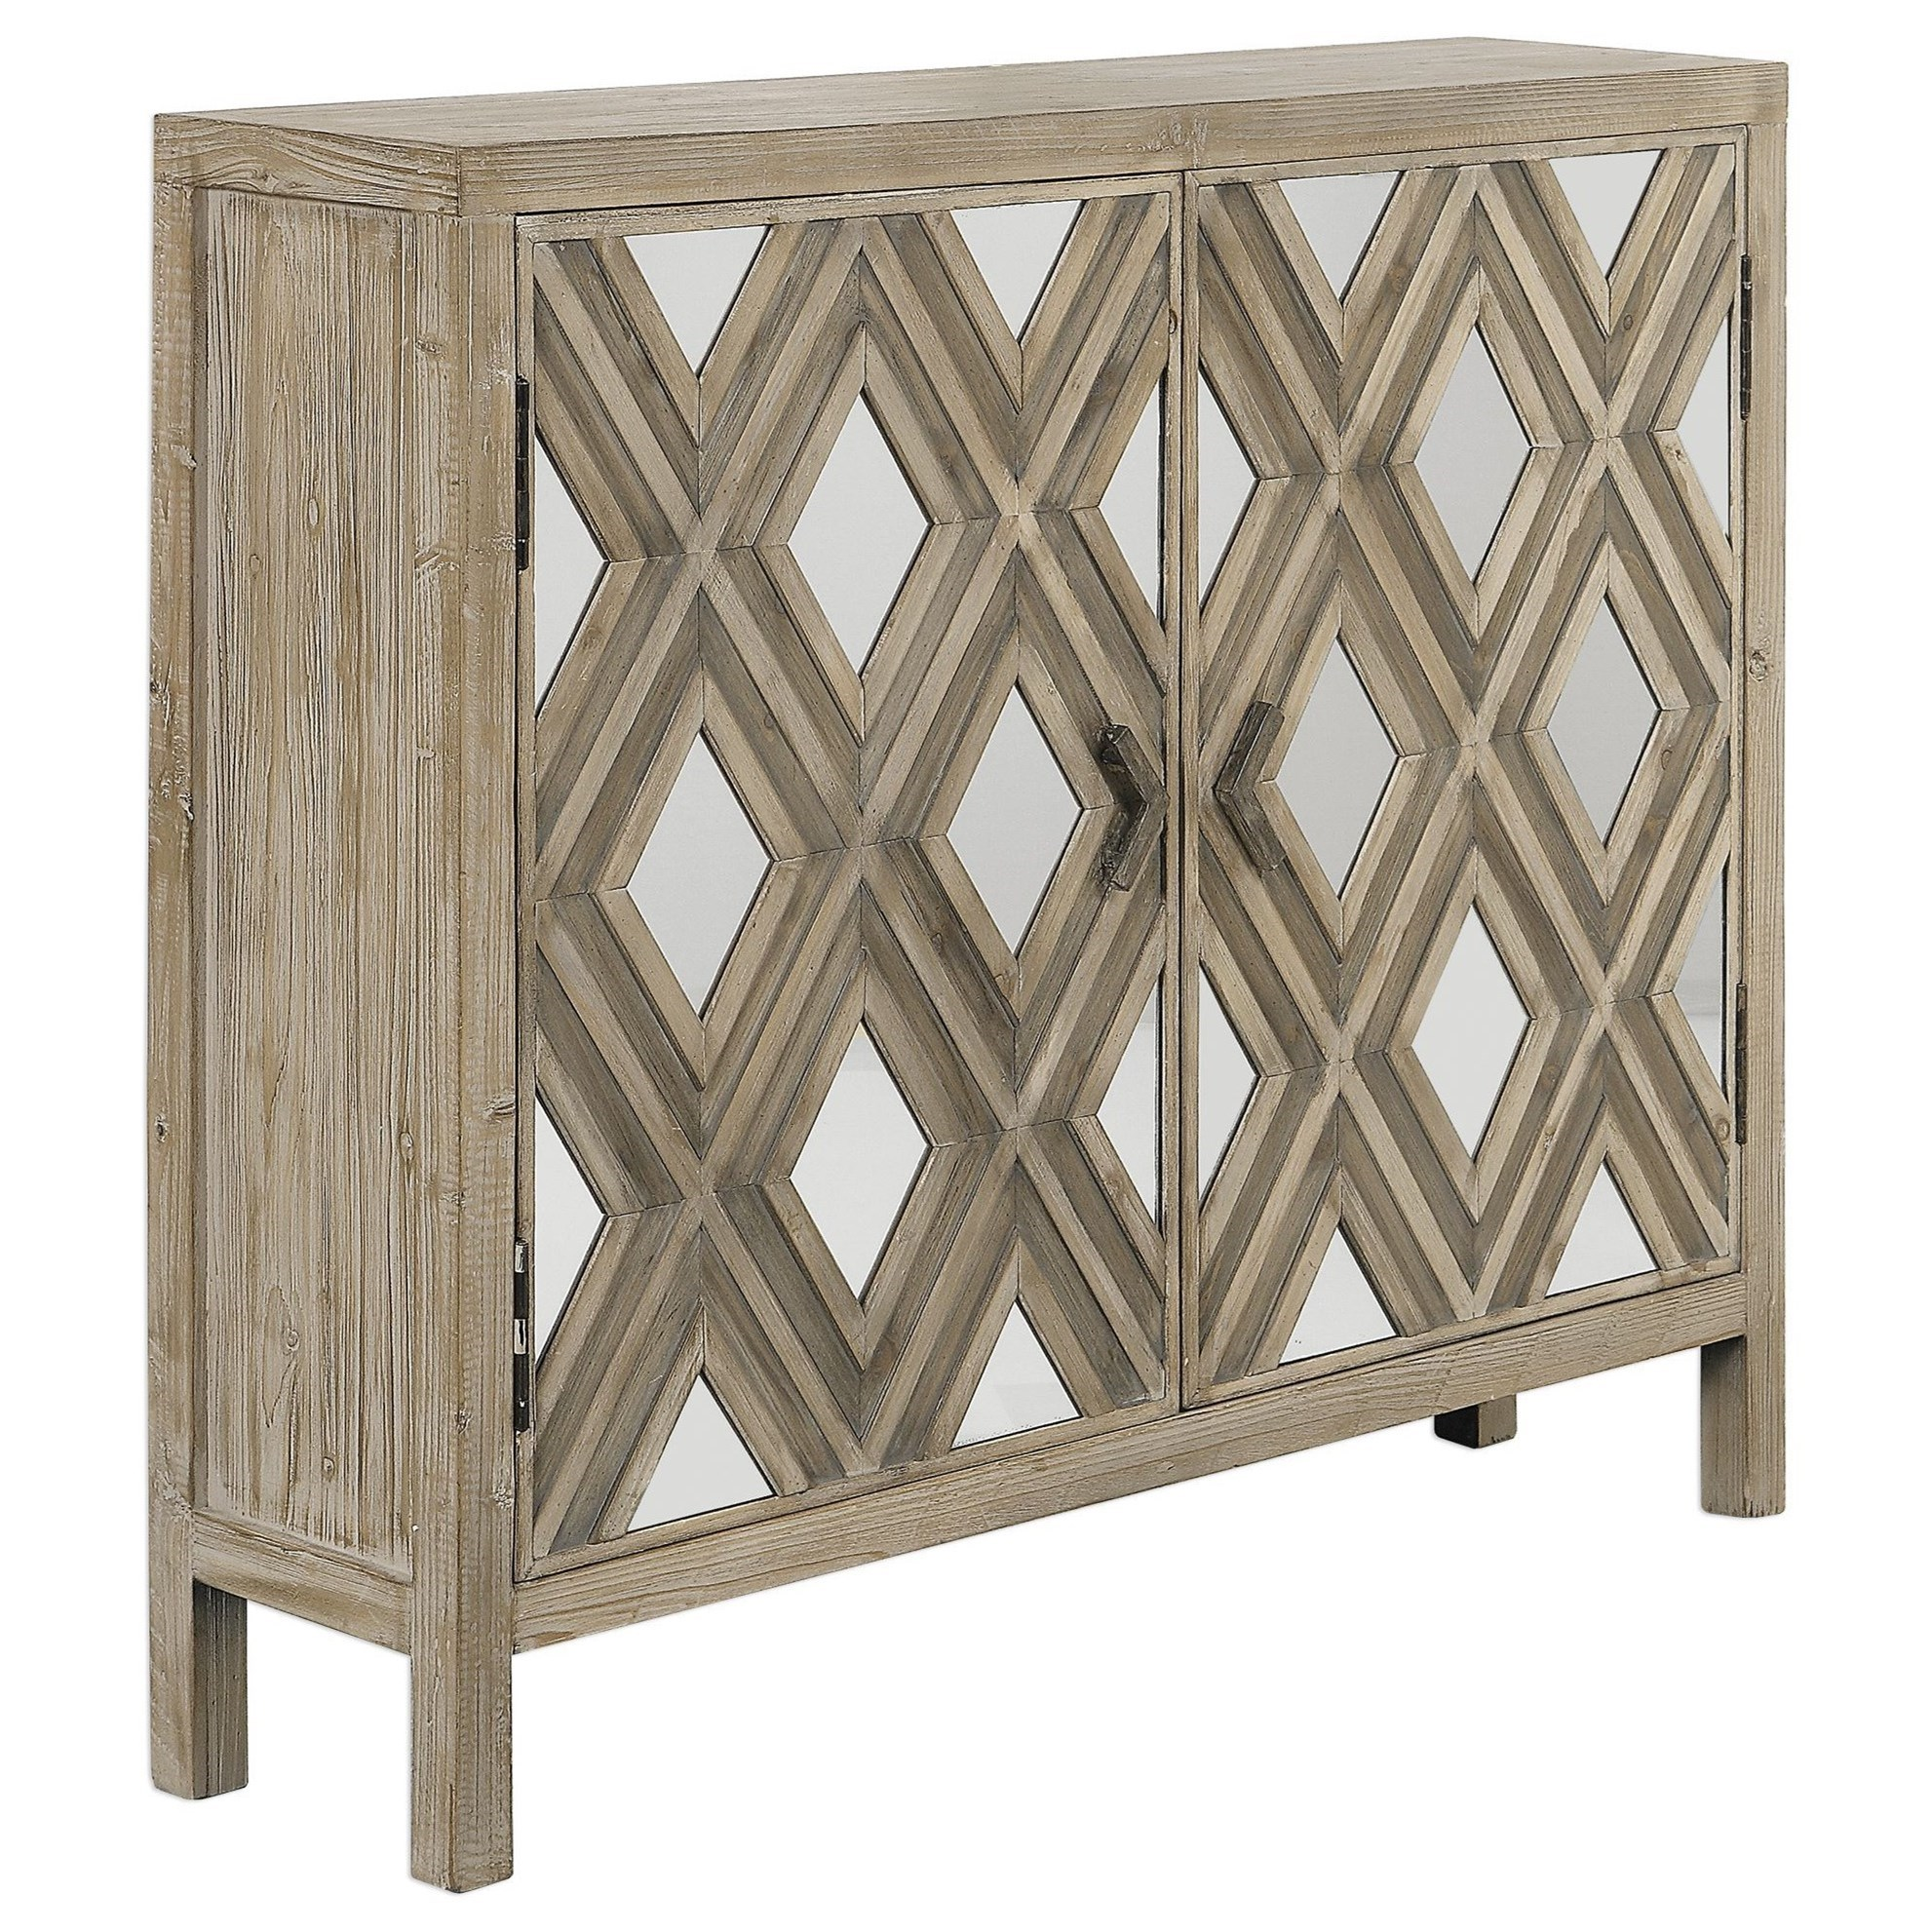 Accent Furniture - Chests Tahira Mirrored Accent Cabinet by Uttermost at Upper Room Home Furnishings